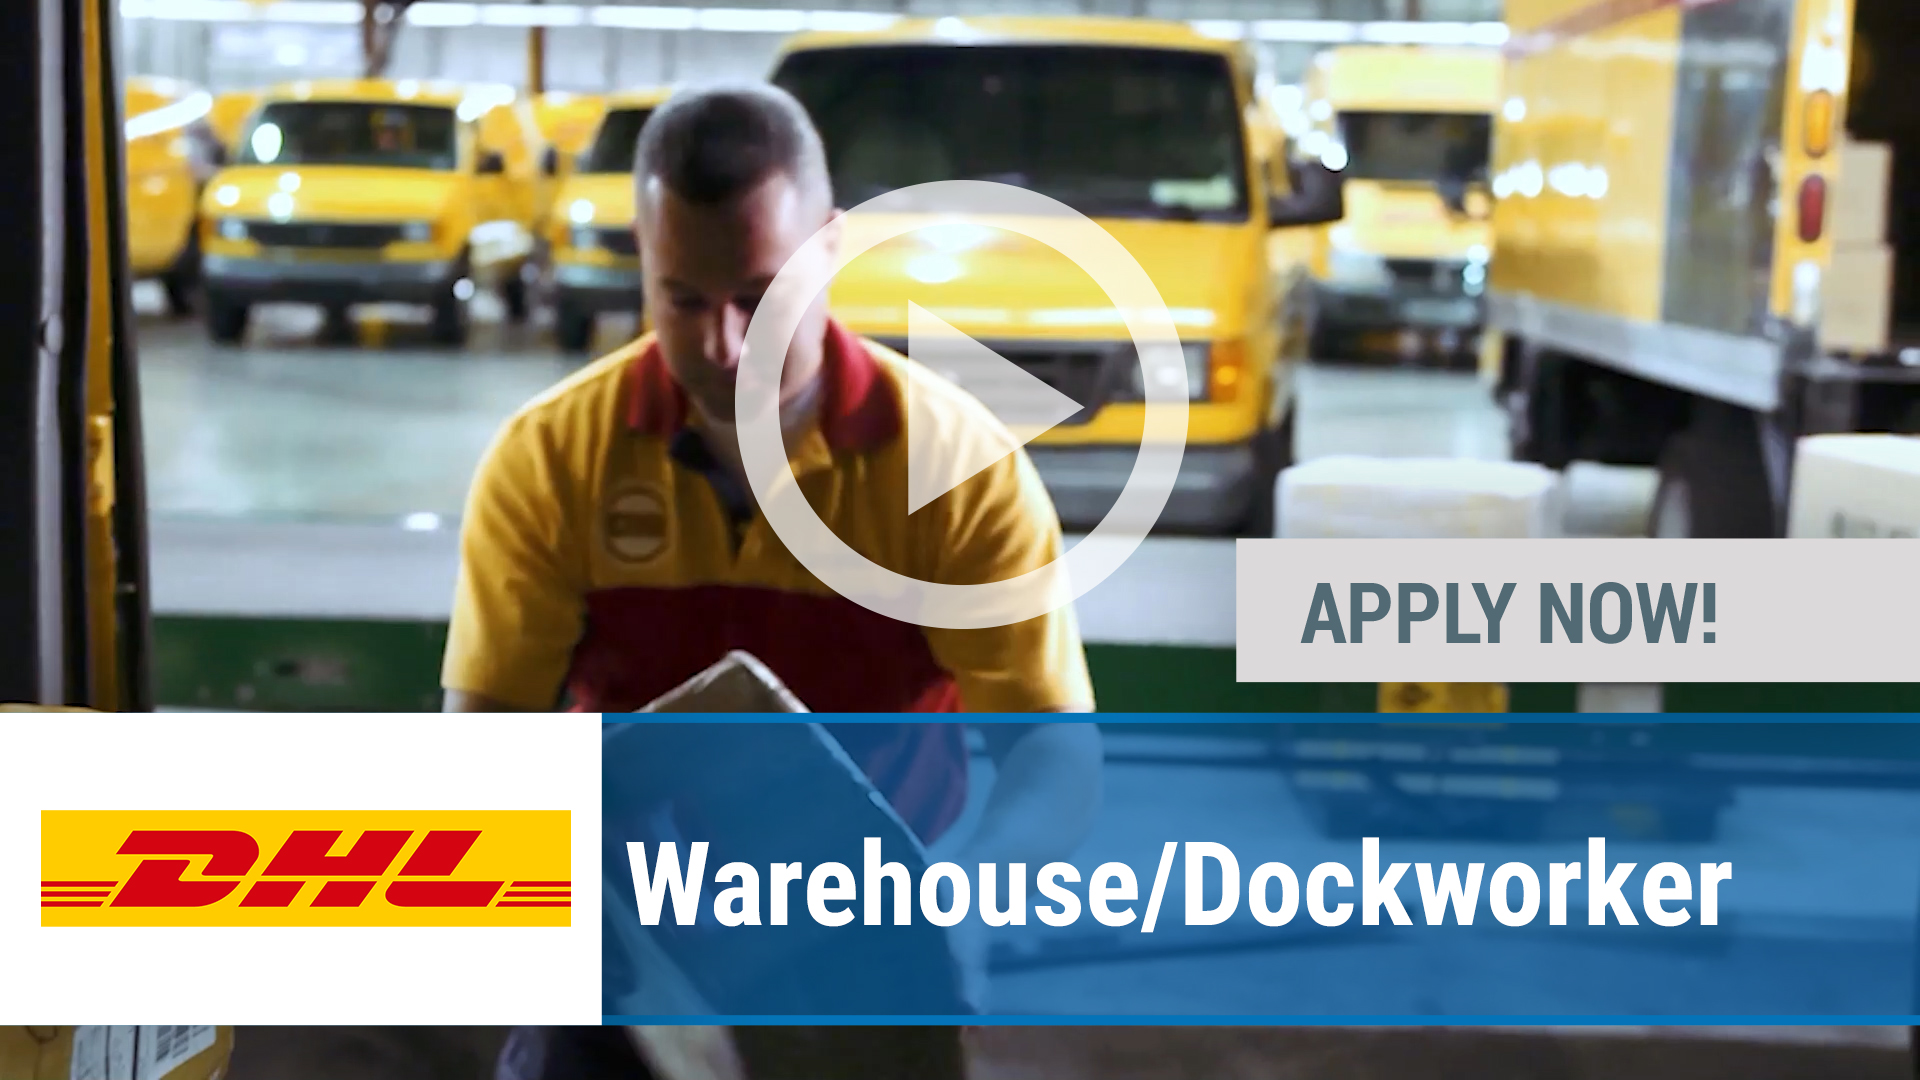 Watch our careers video for available job opening Warehouse_Dockworker in New York, NY, USA